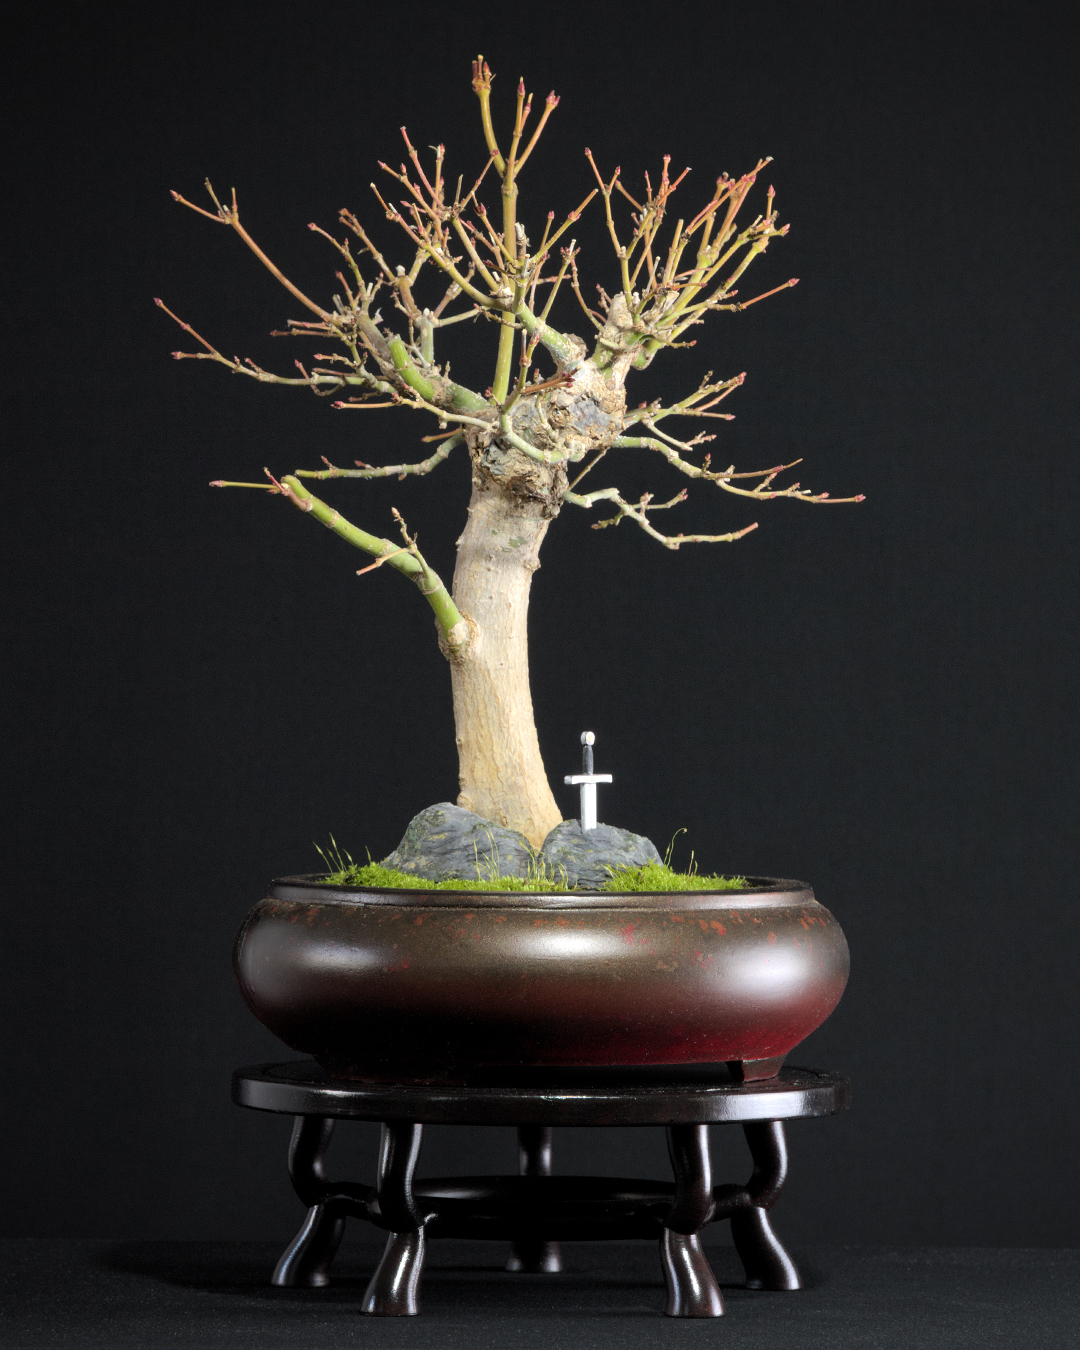 Excalibur 3d Druck Bonsai Dekoration